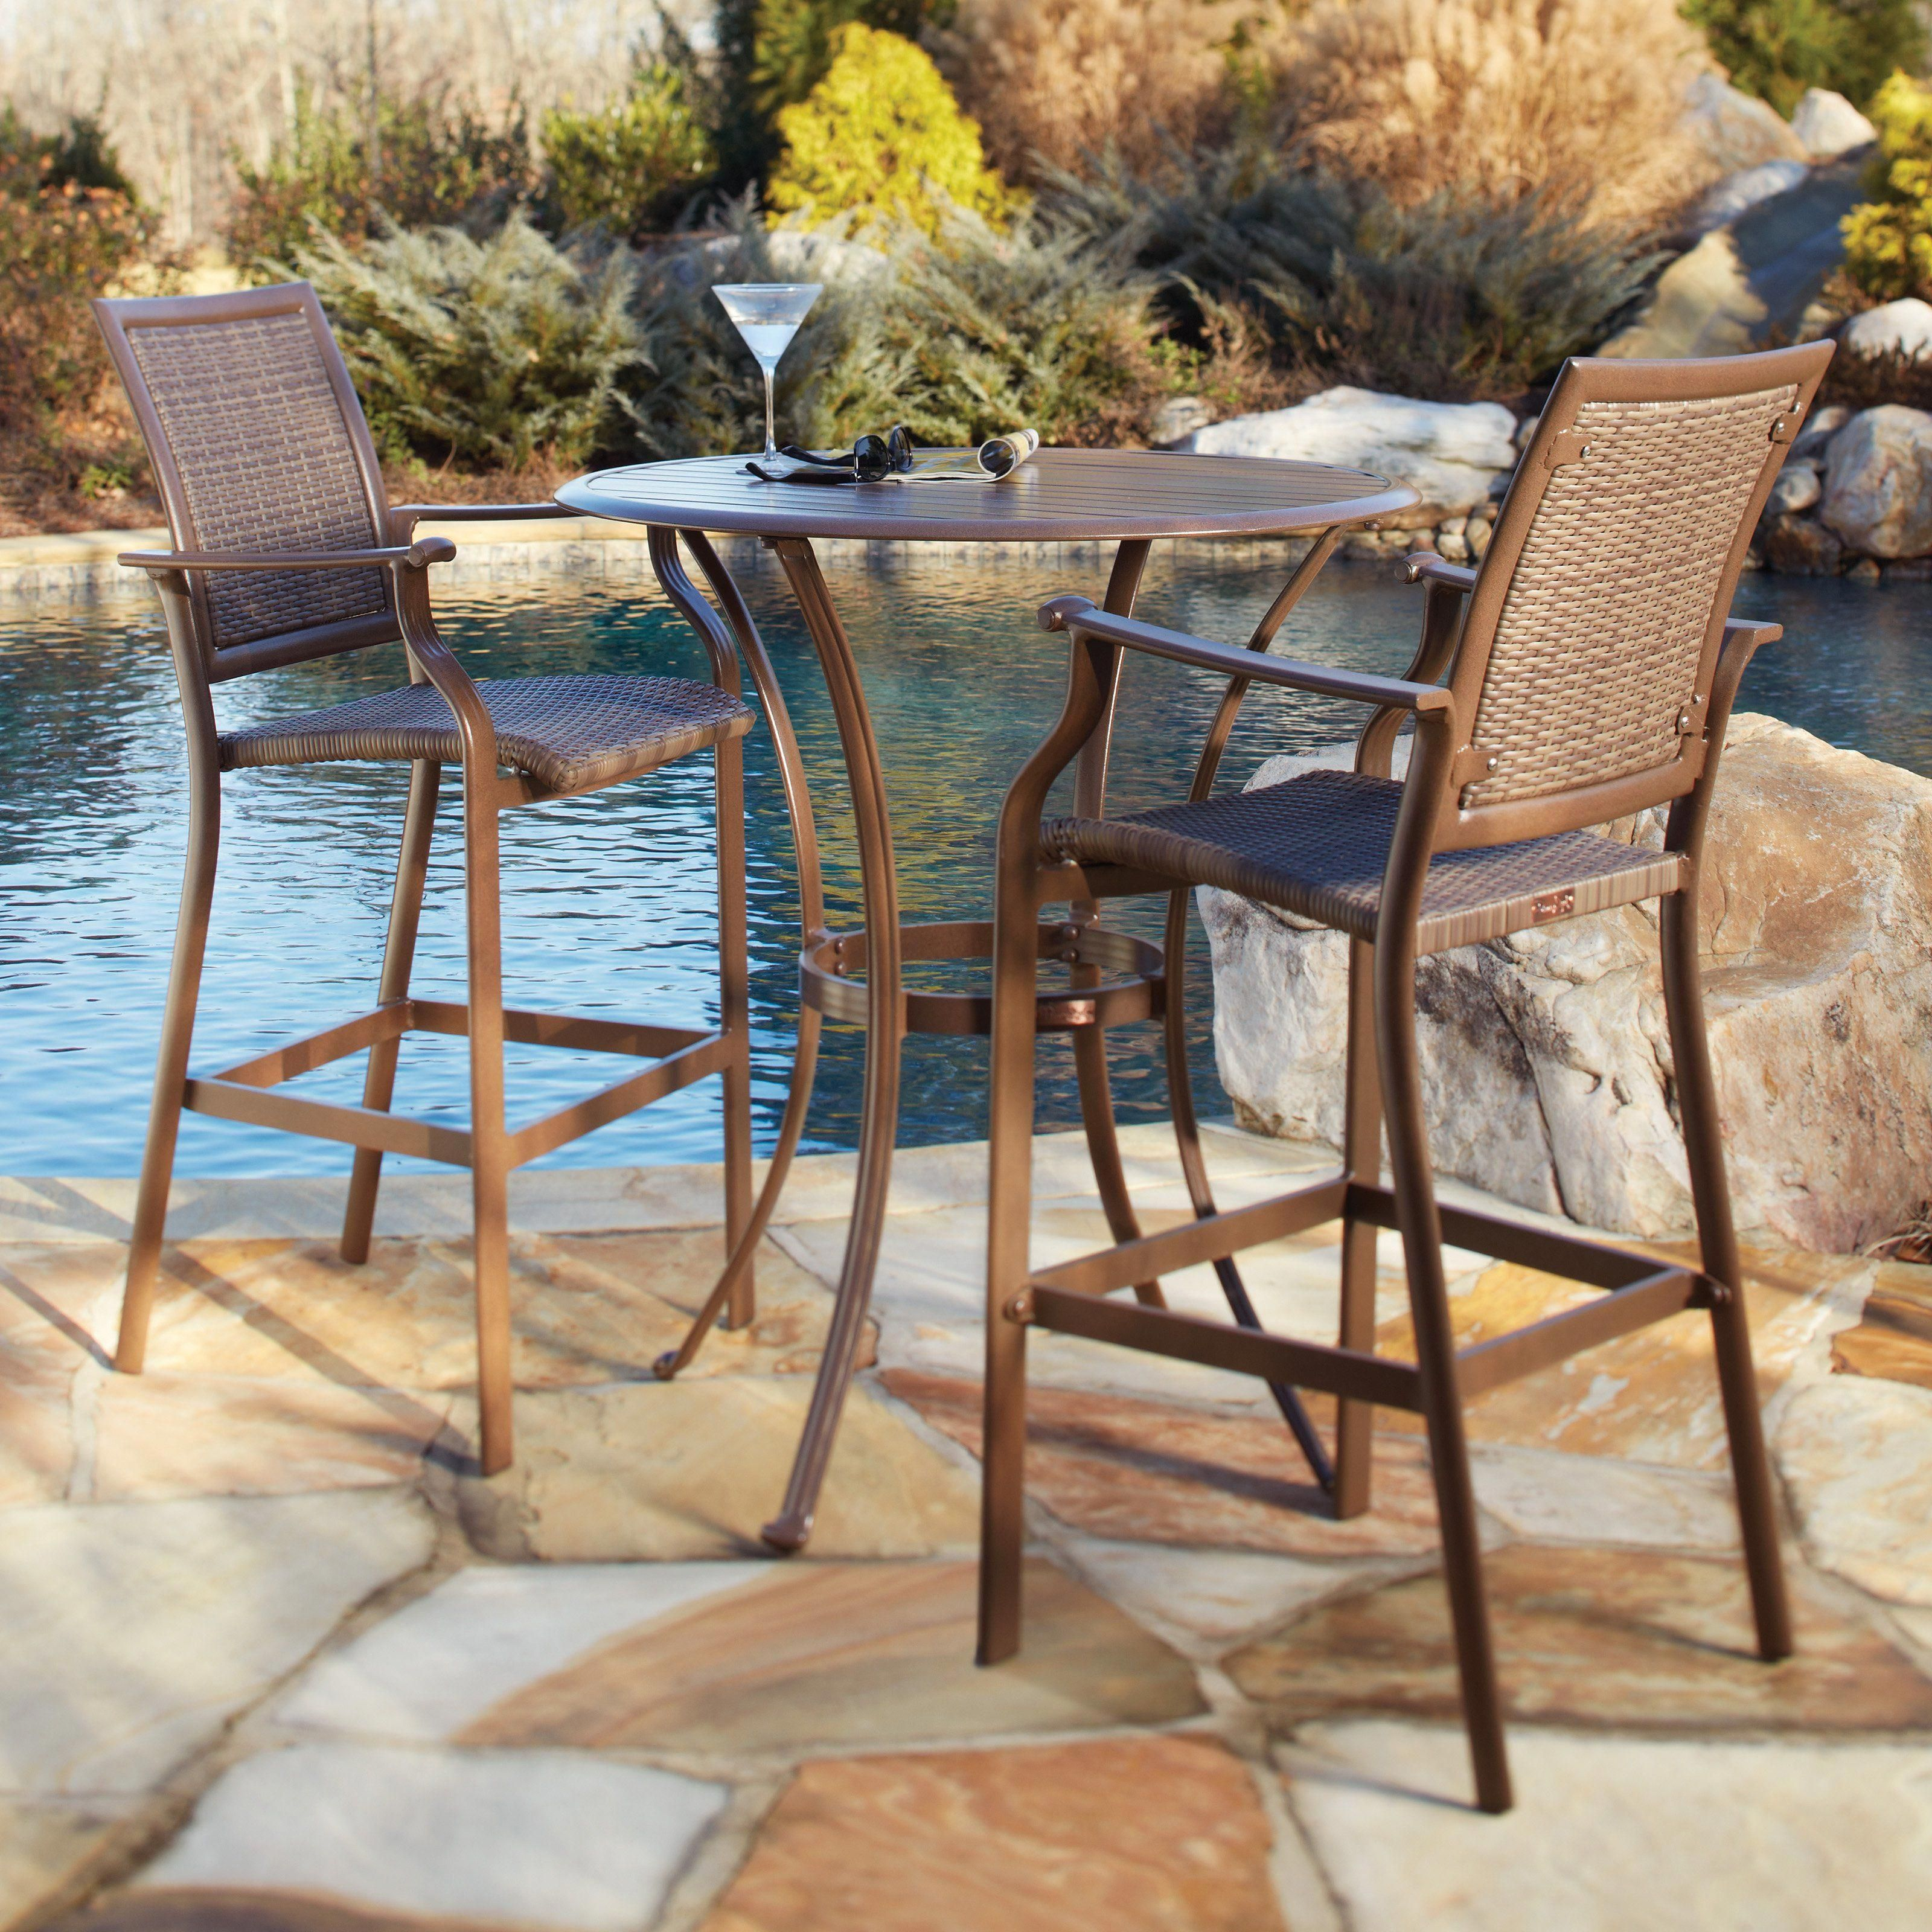 Tall Patio Furniture Bistrofurnitureideas Outdoor Chairs Rooms Pub Table